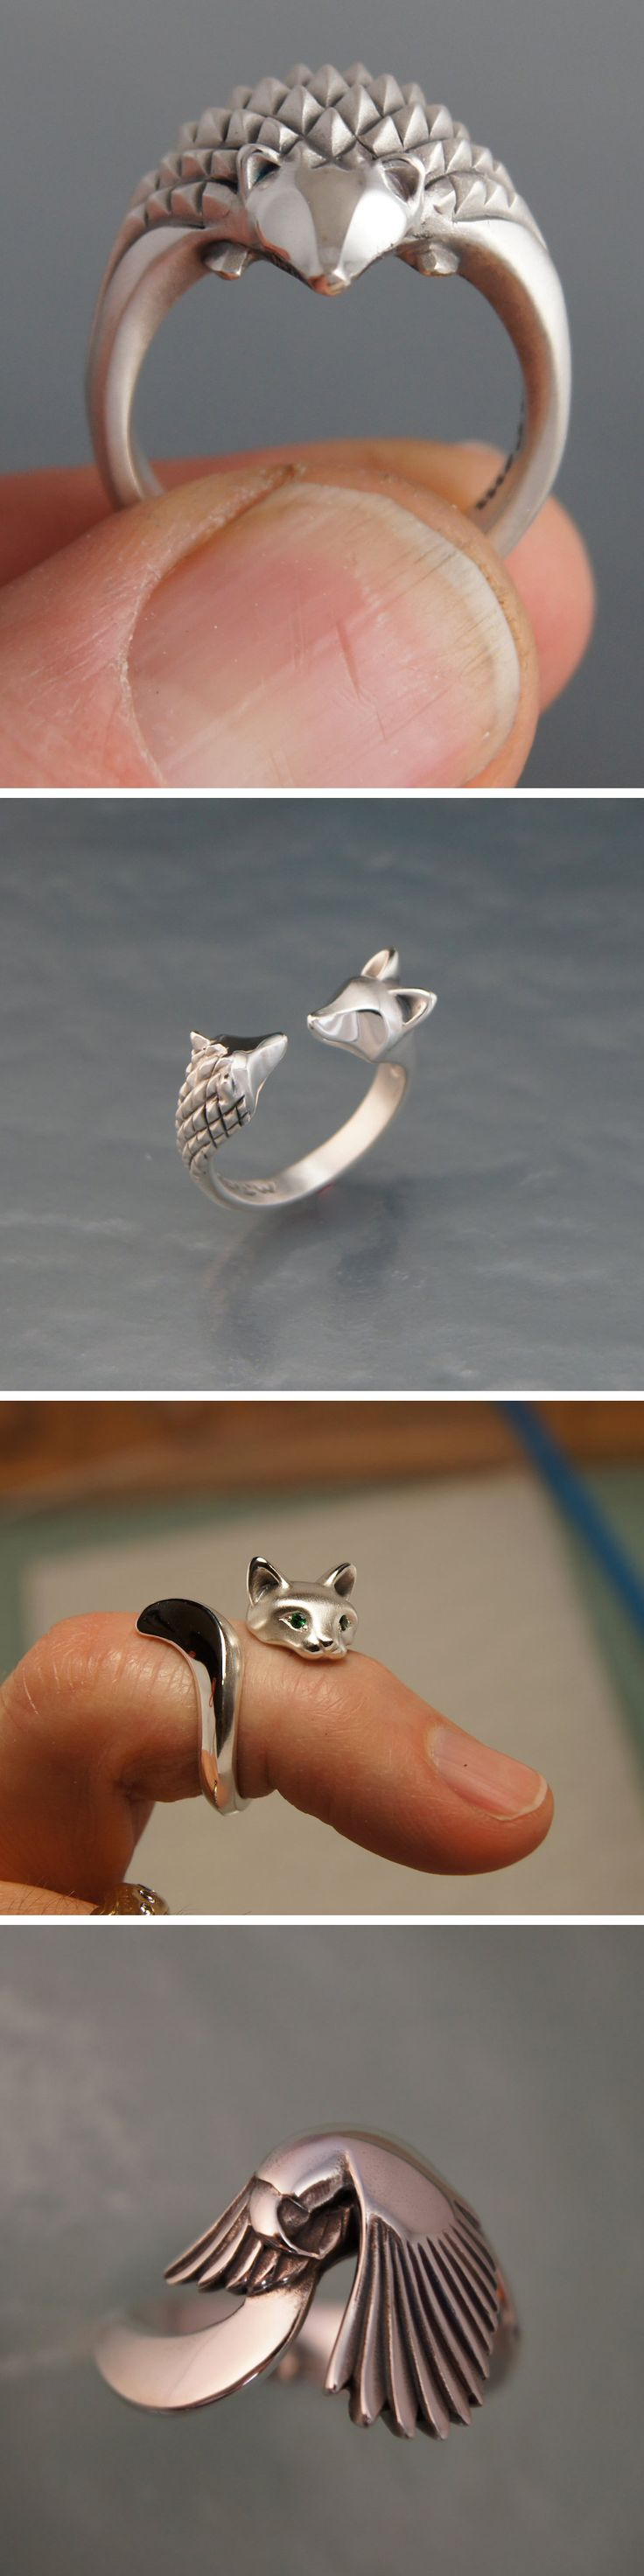 Lovely Metal Animals that Wrap Around Your Finger by Michael Tatom